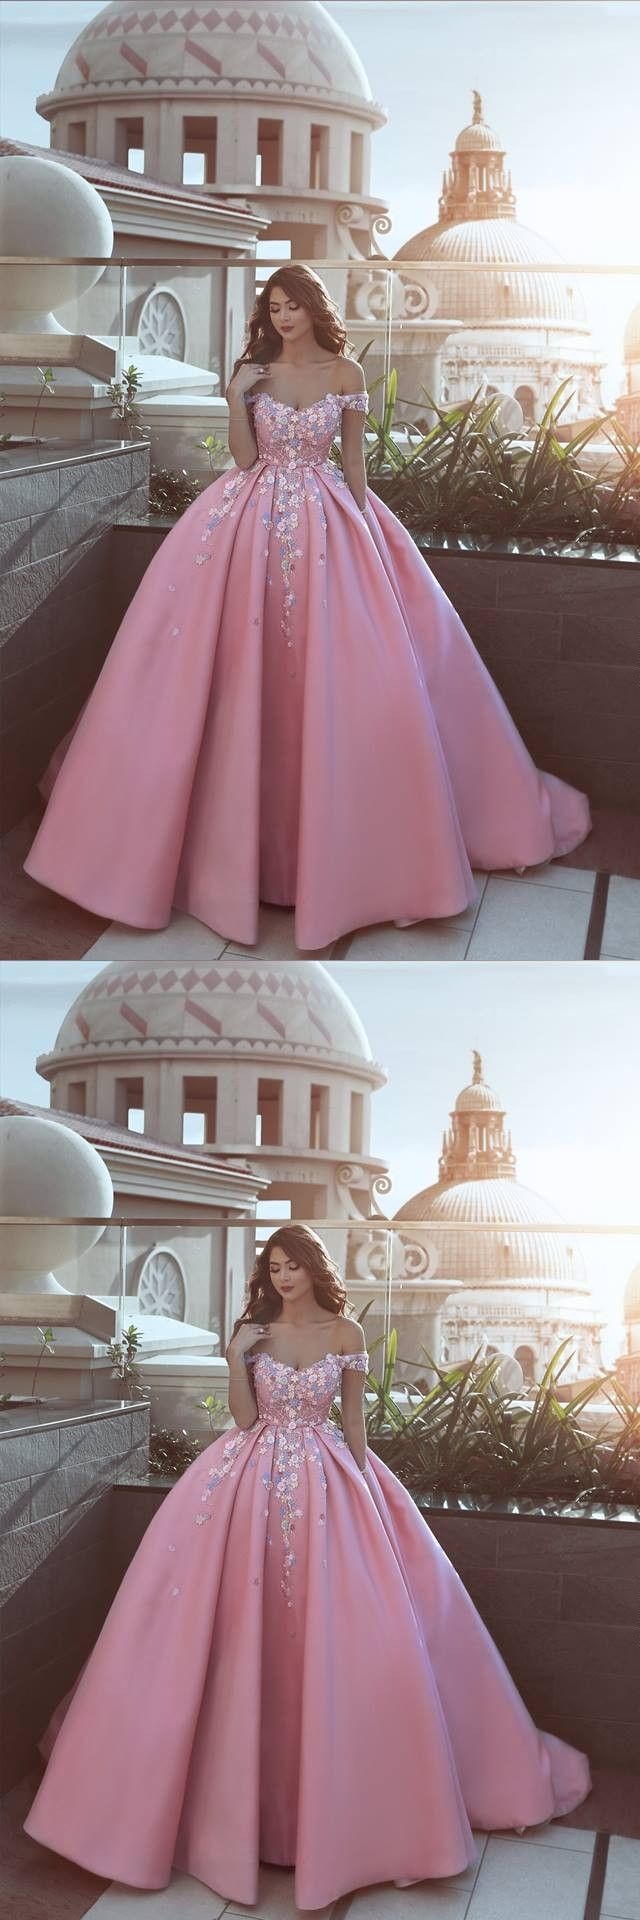 New arrival prom dress floral pink luxury puffy offthe